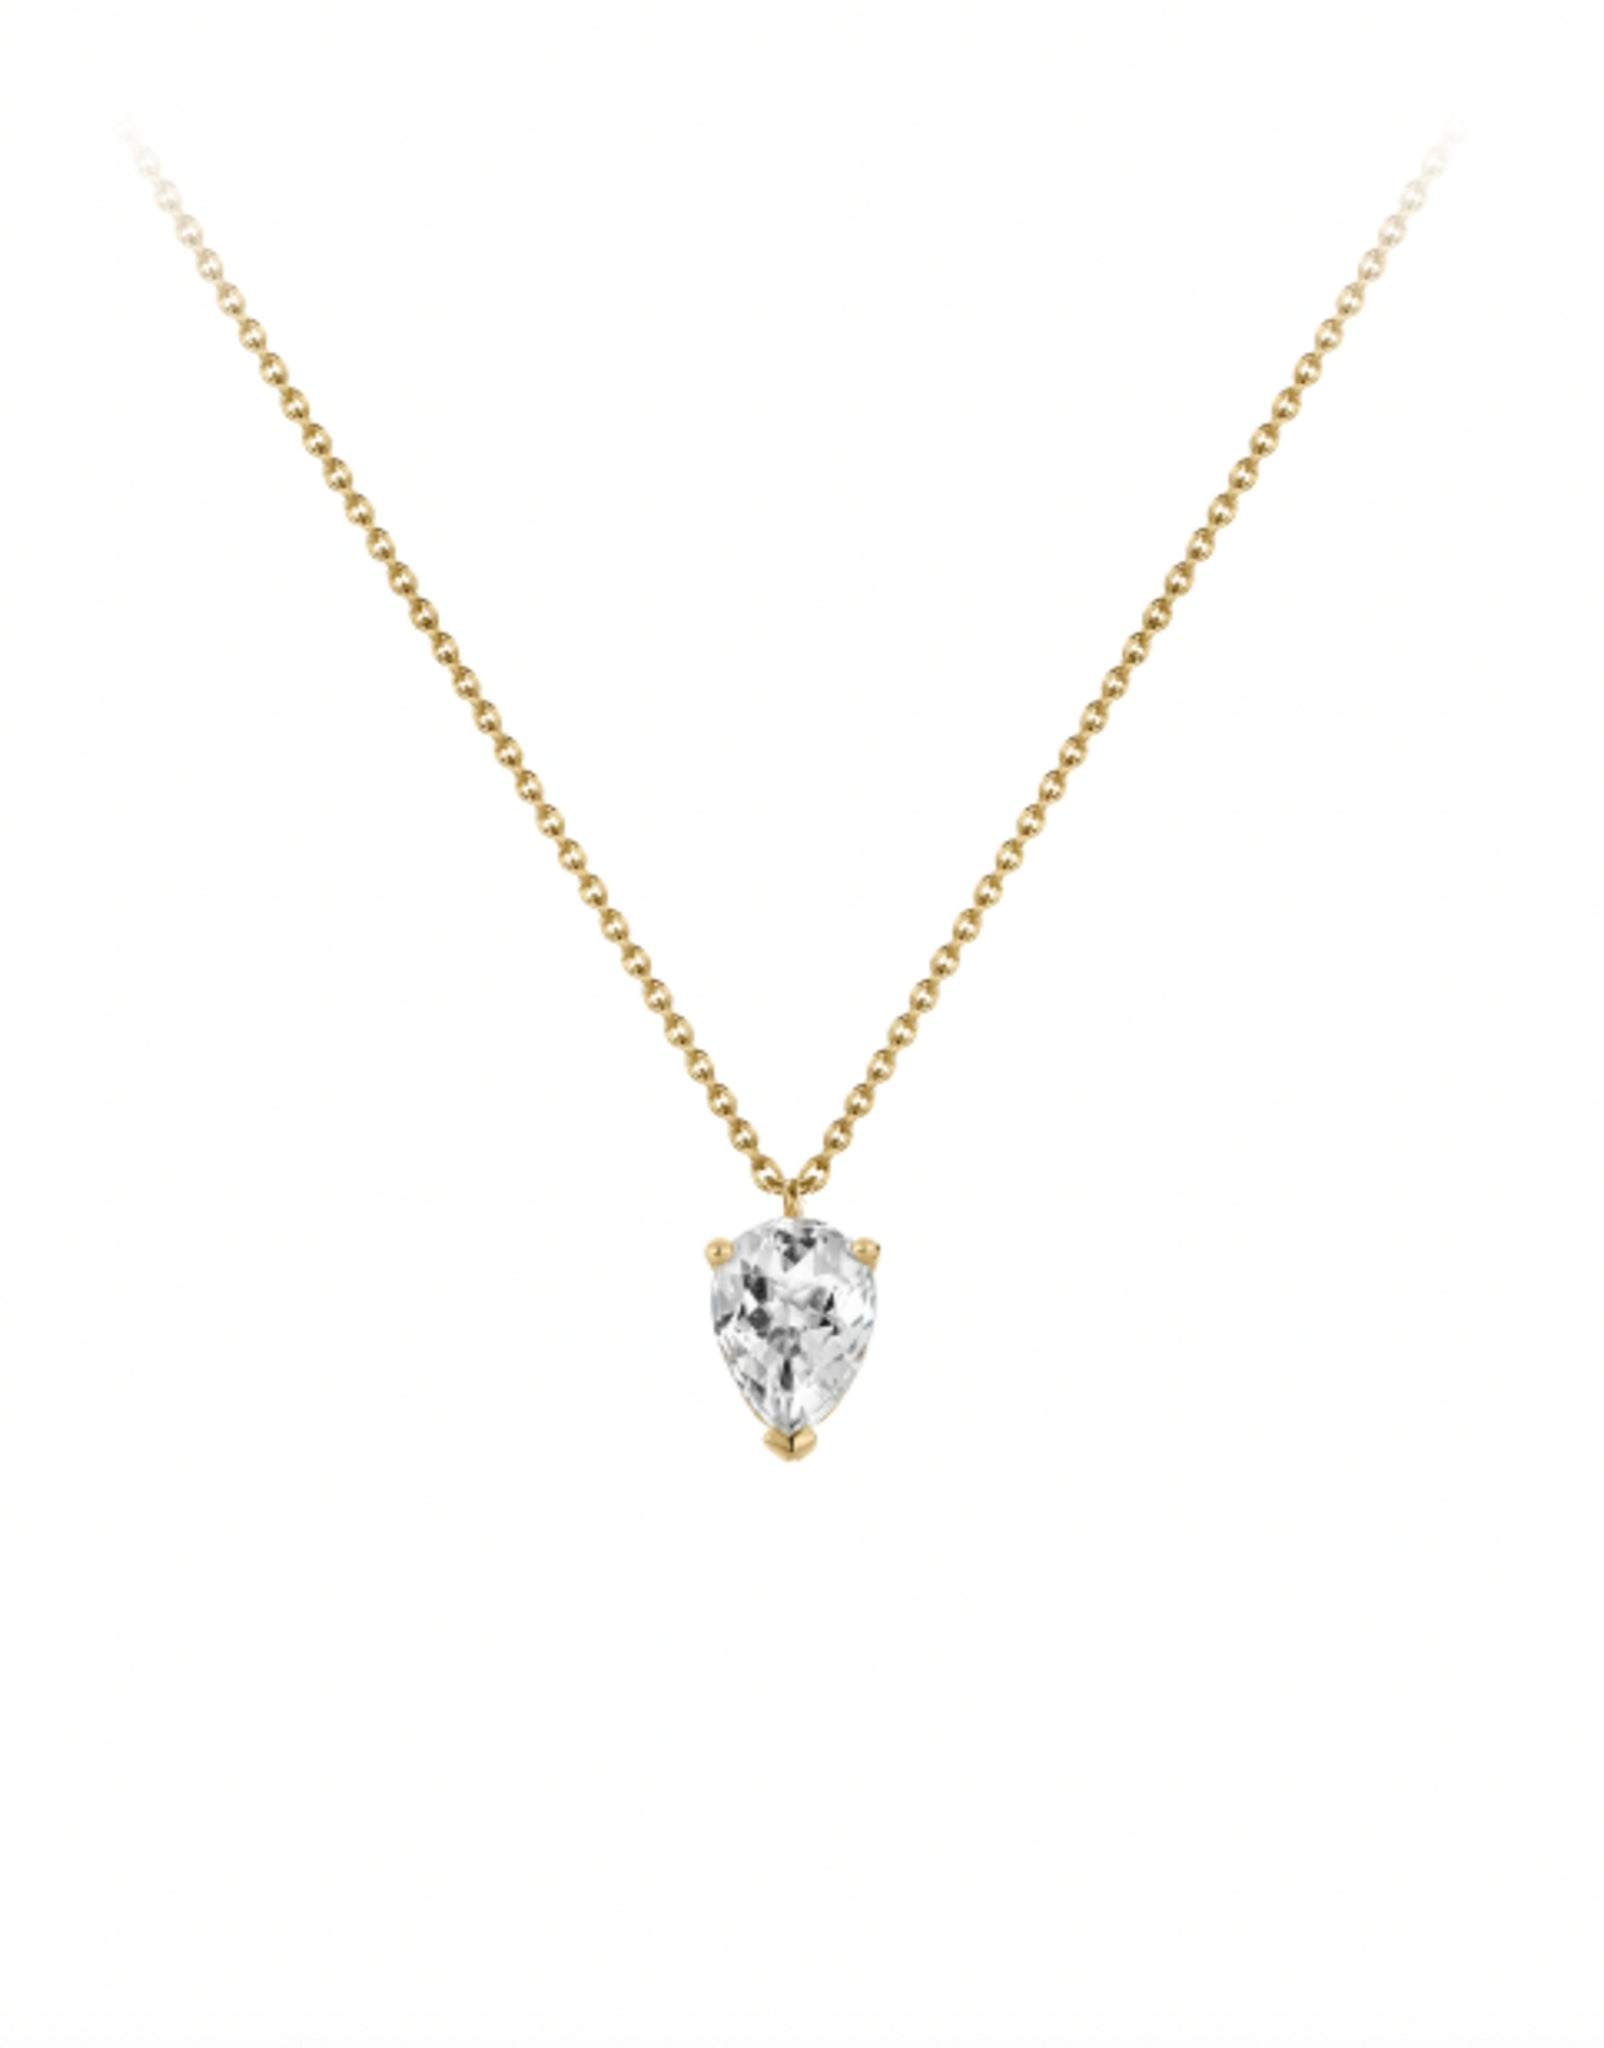 BLOOM WHITE TOPAZ NECKLACE